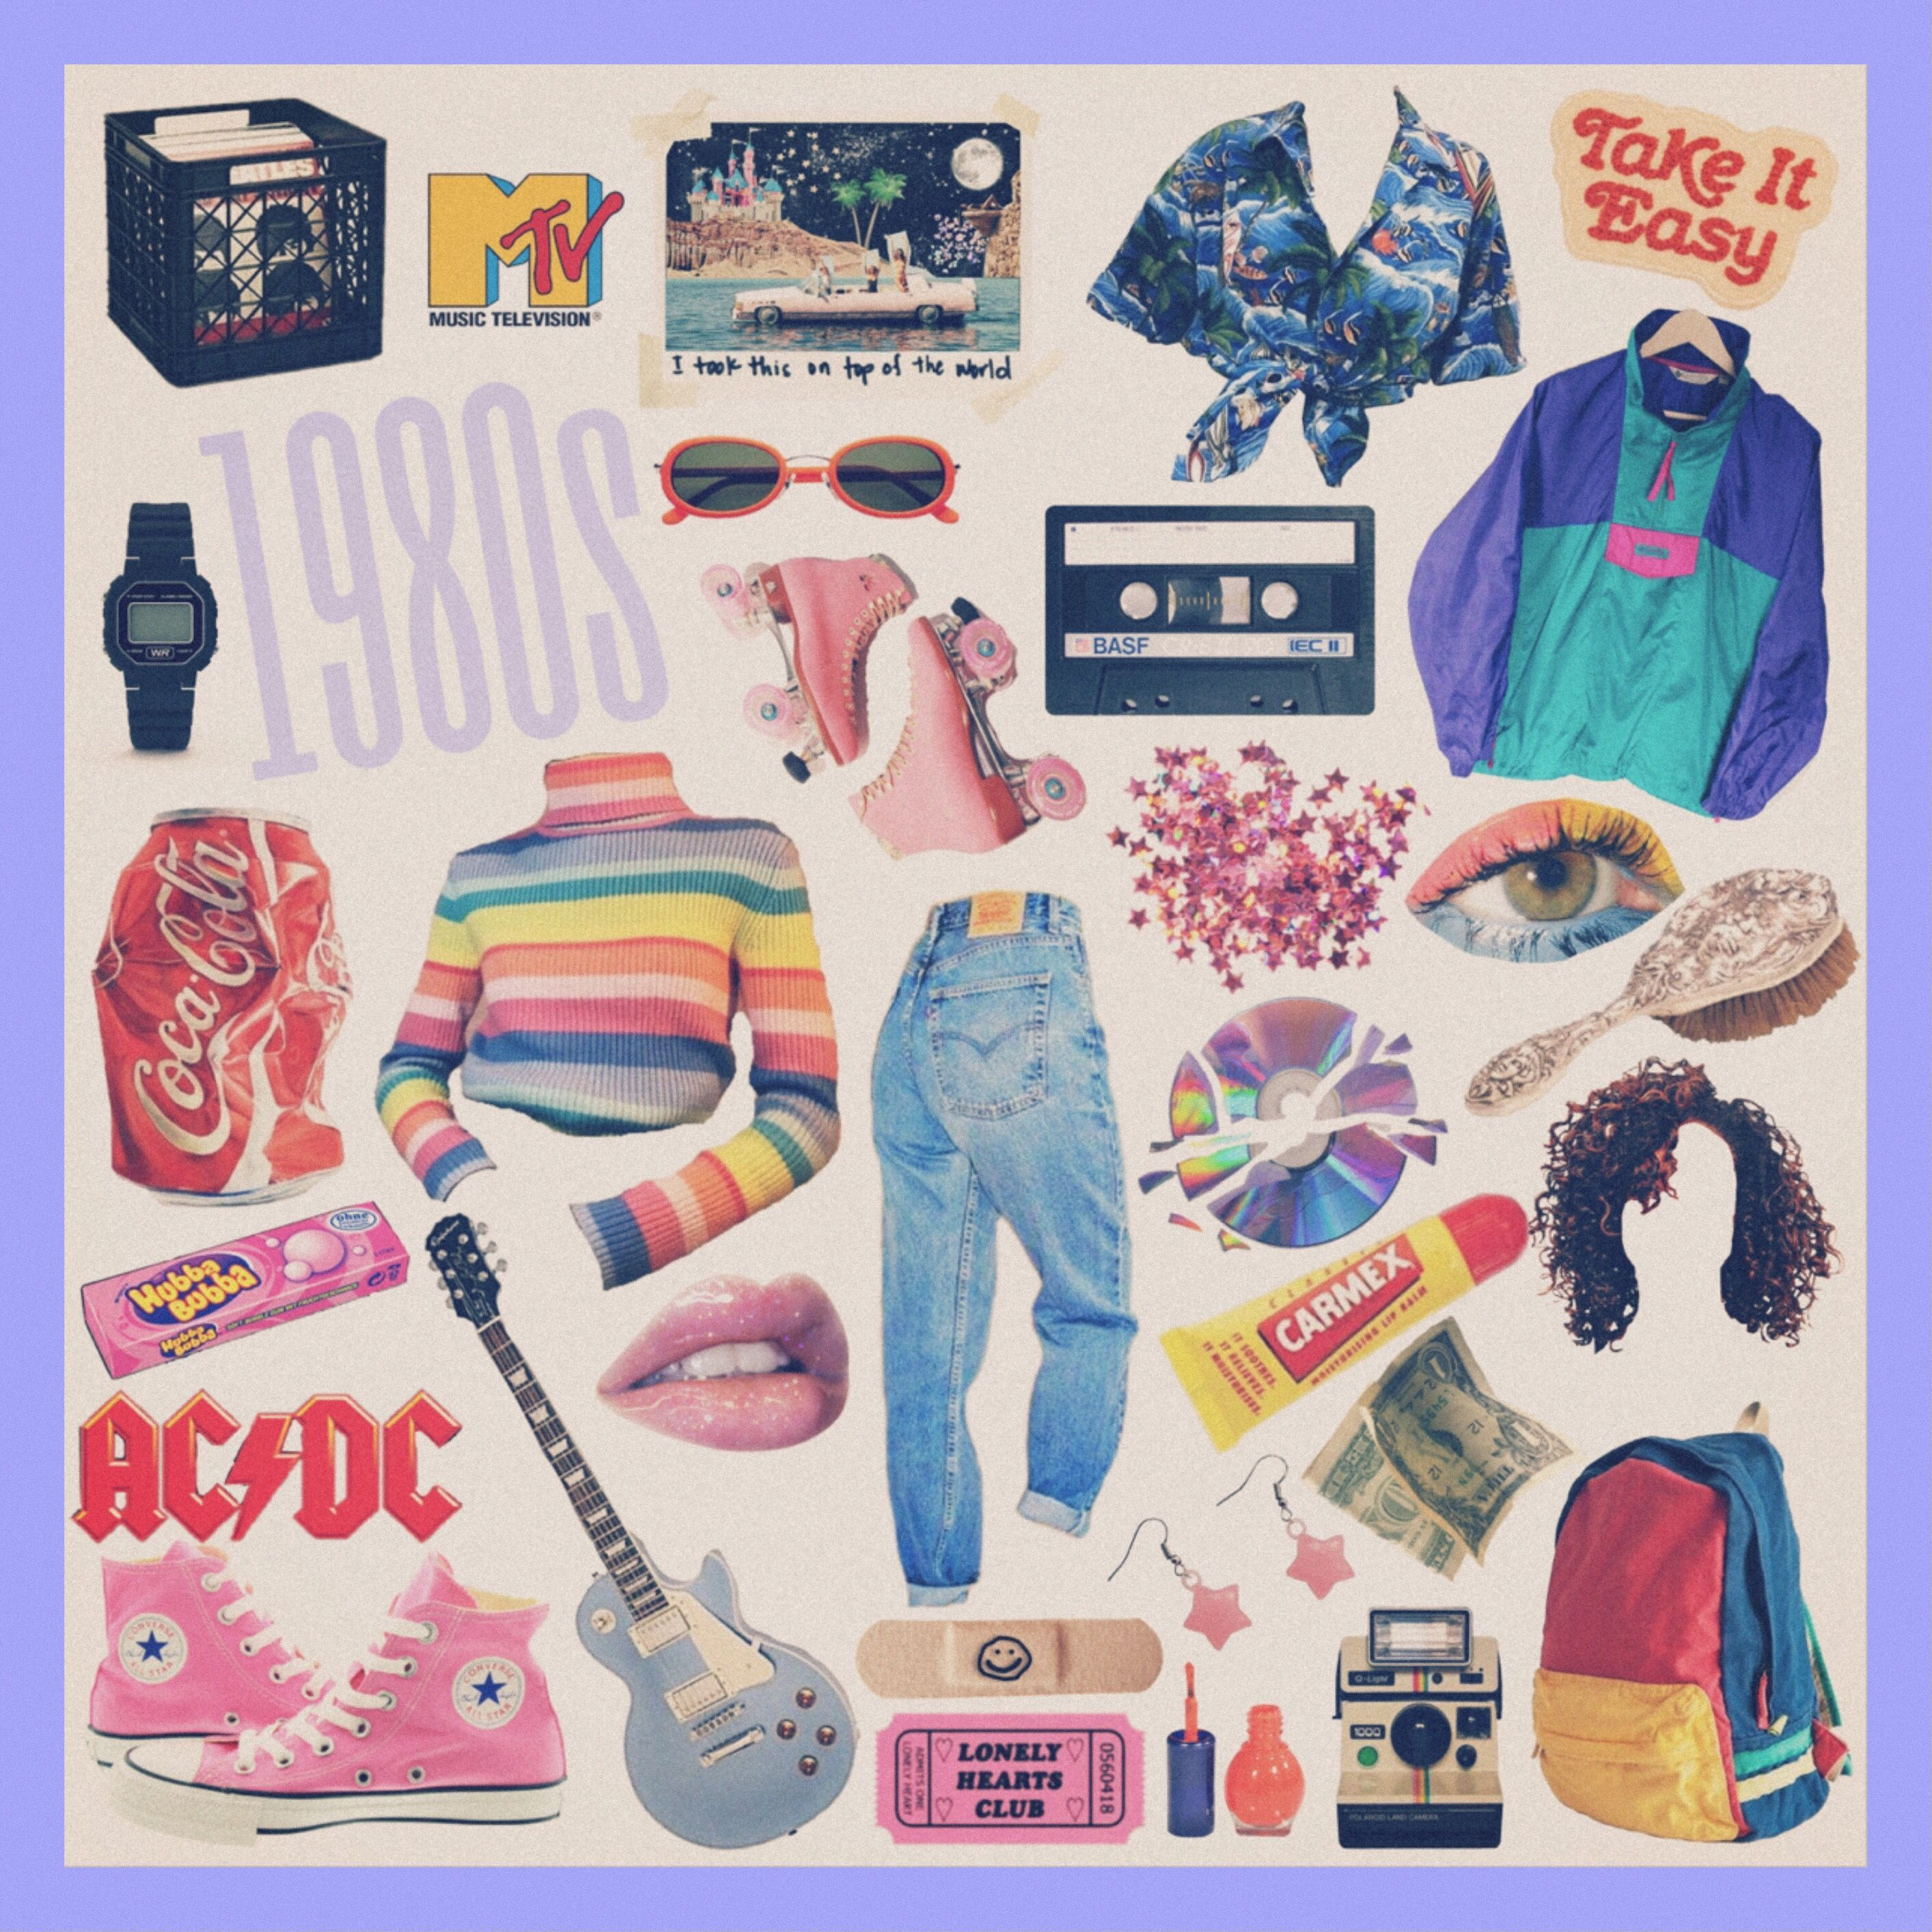 Aesthetic 80s Outfits Tumblr